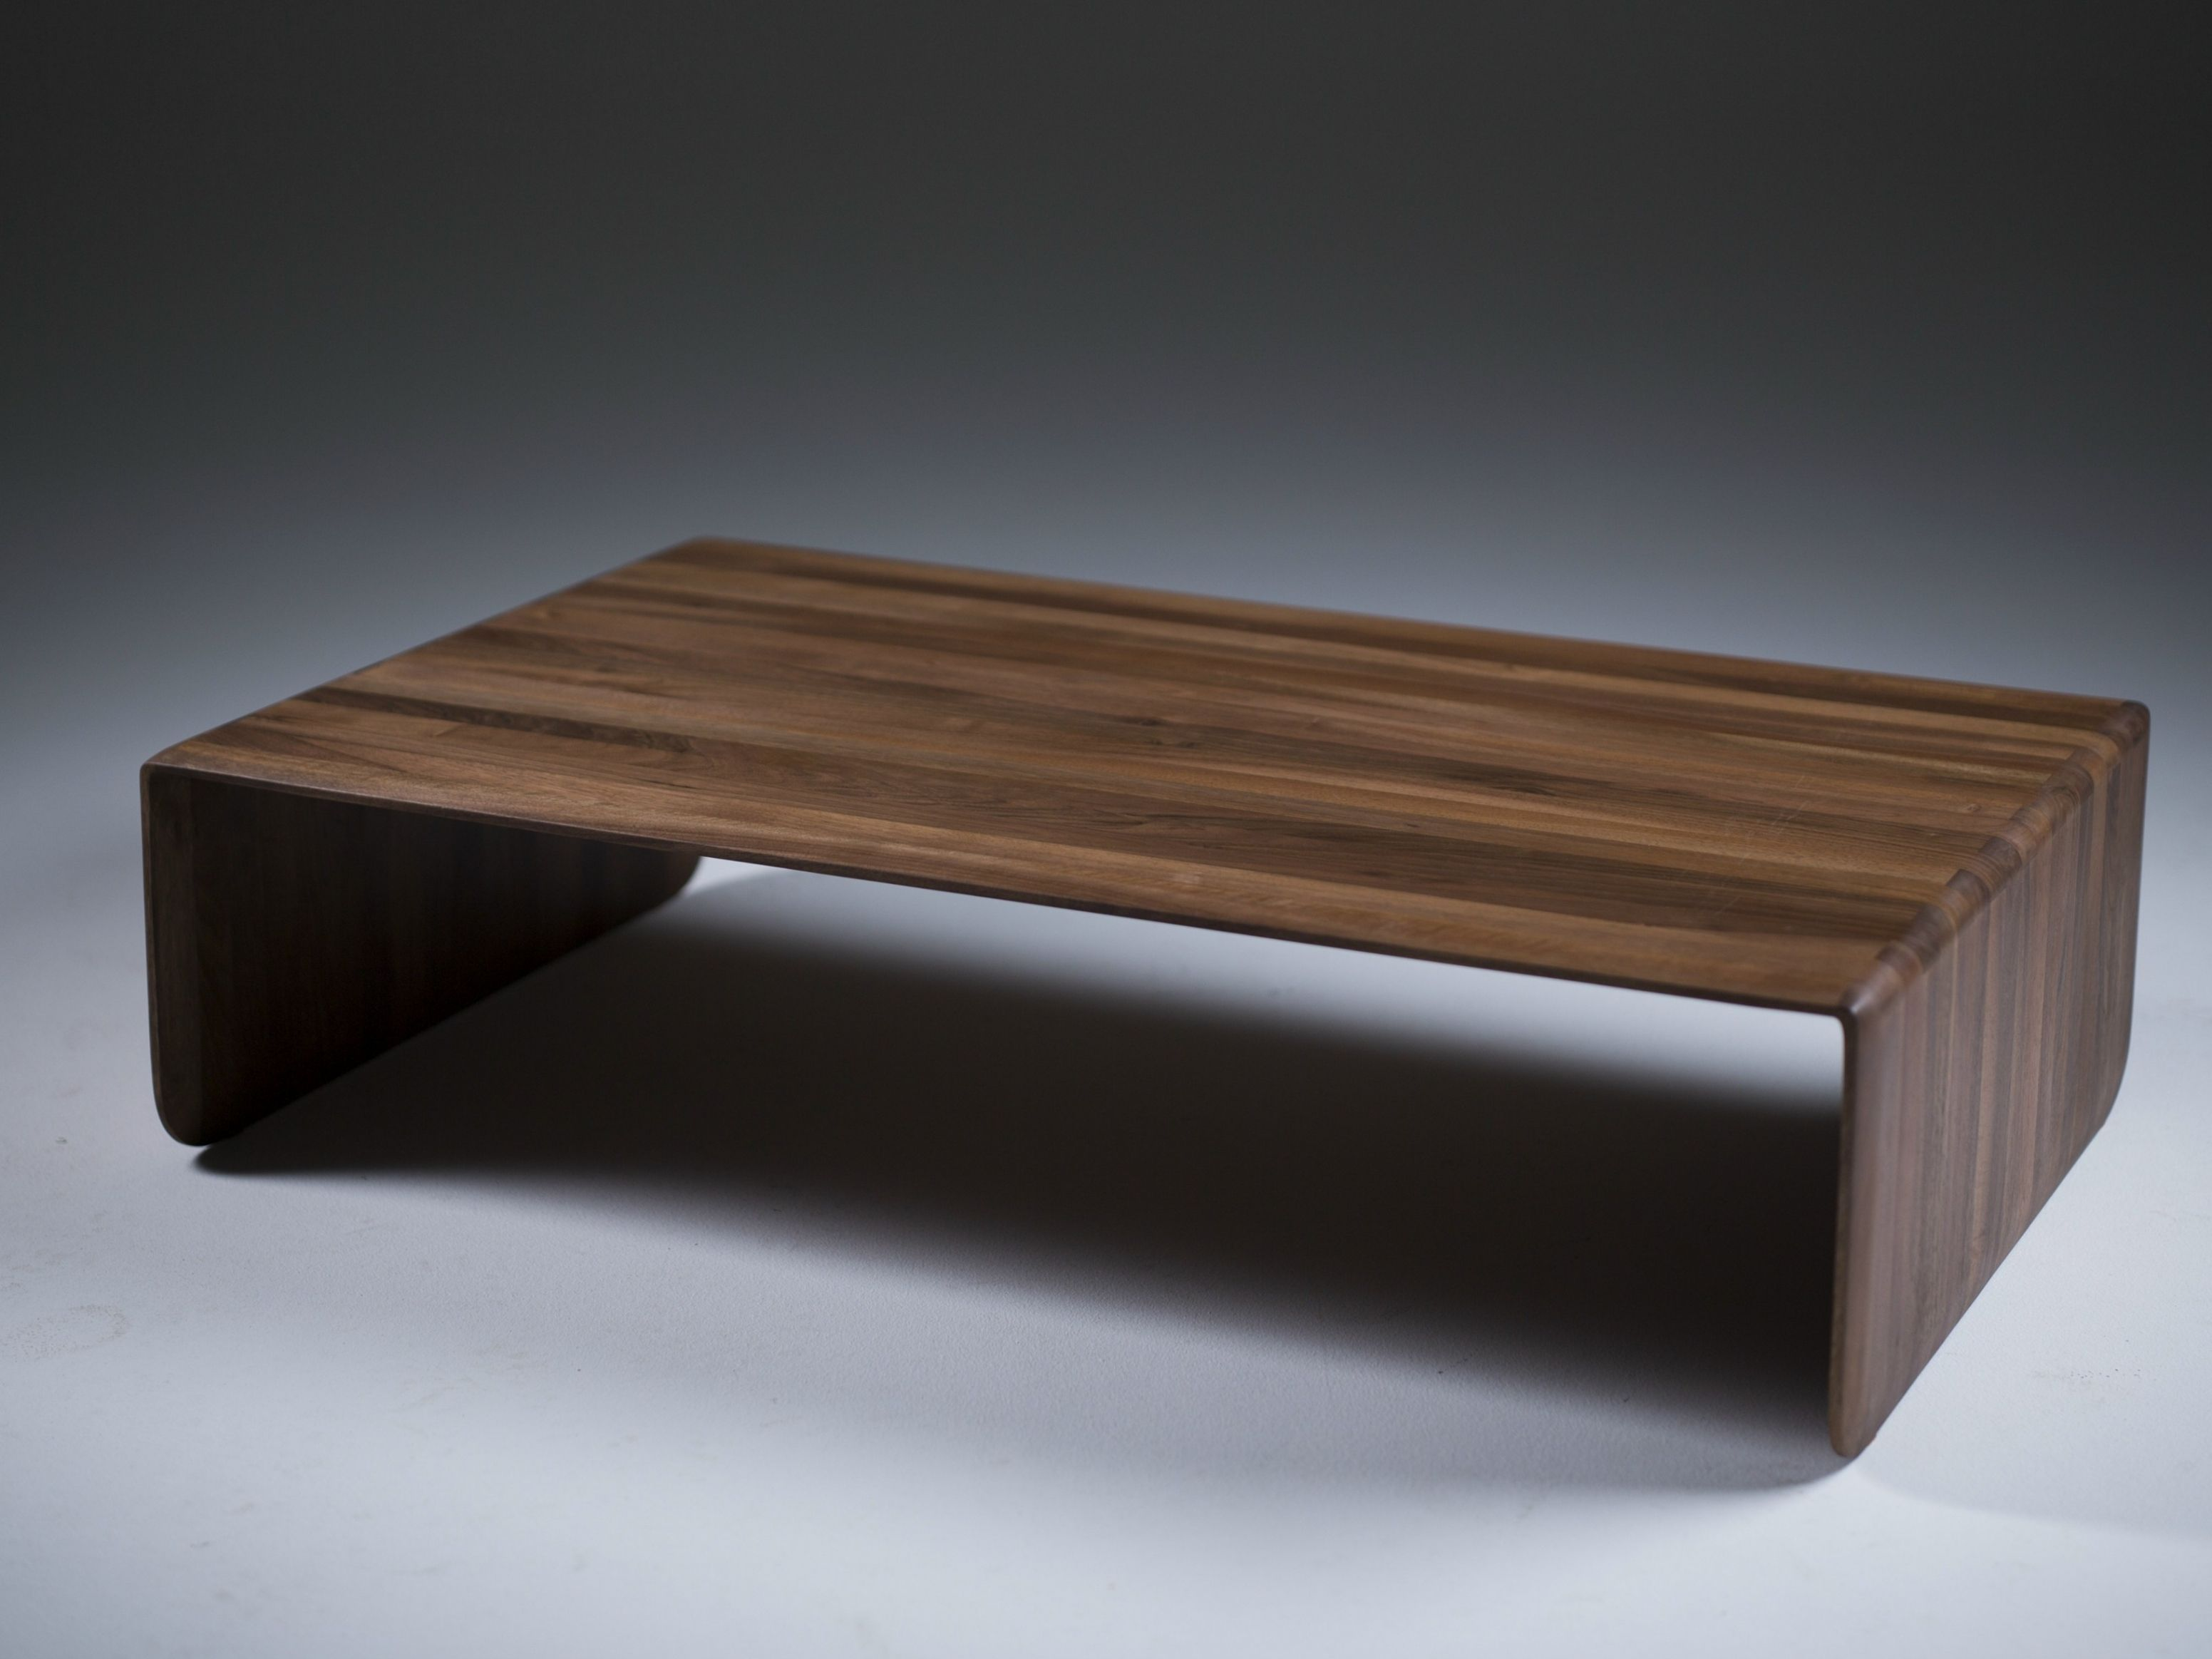 70 Marvelous Modern Coffee Table Design Inspirations Collections Freshouz Com Wood Coffee Table Design Coffee Table Coffee Table Design Modern [ 2327 x 3103 Pixel ]